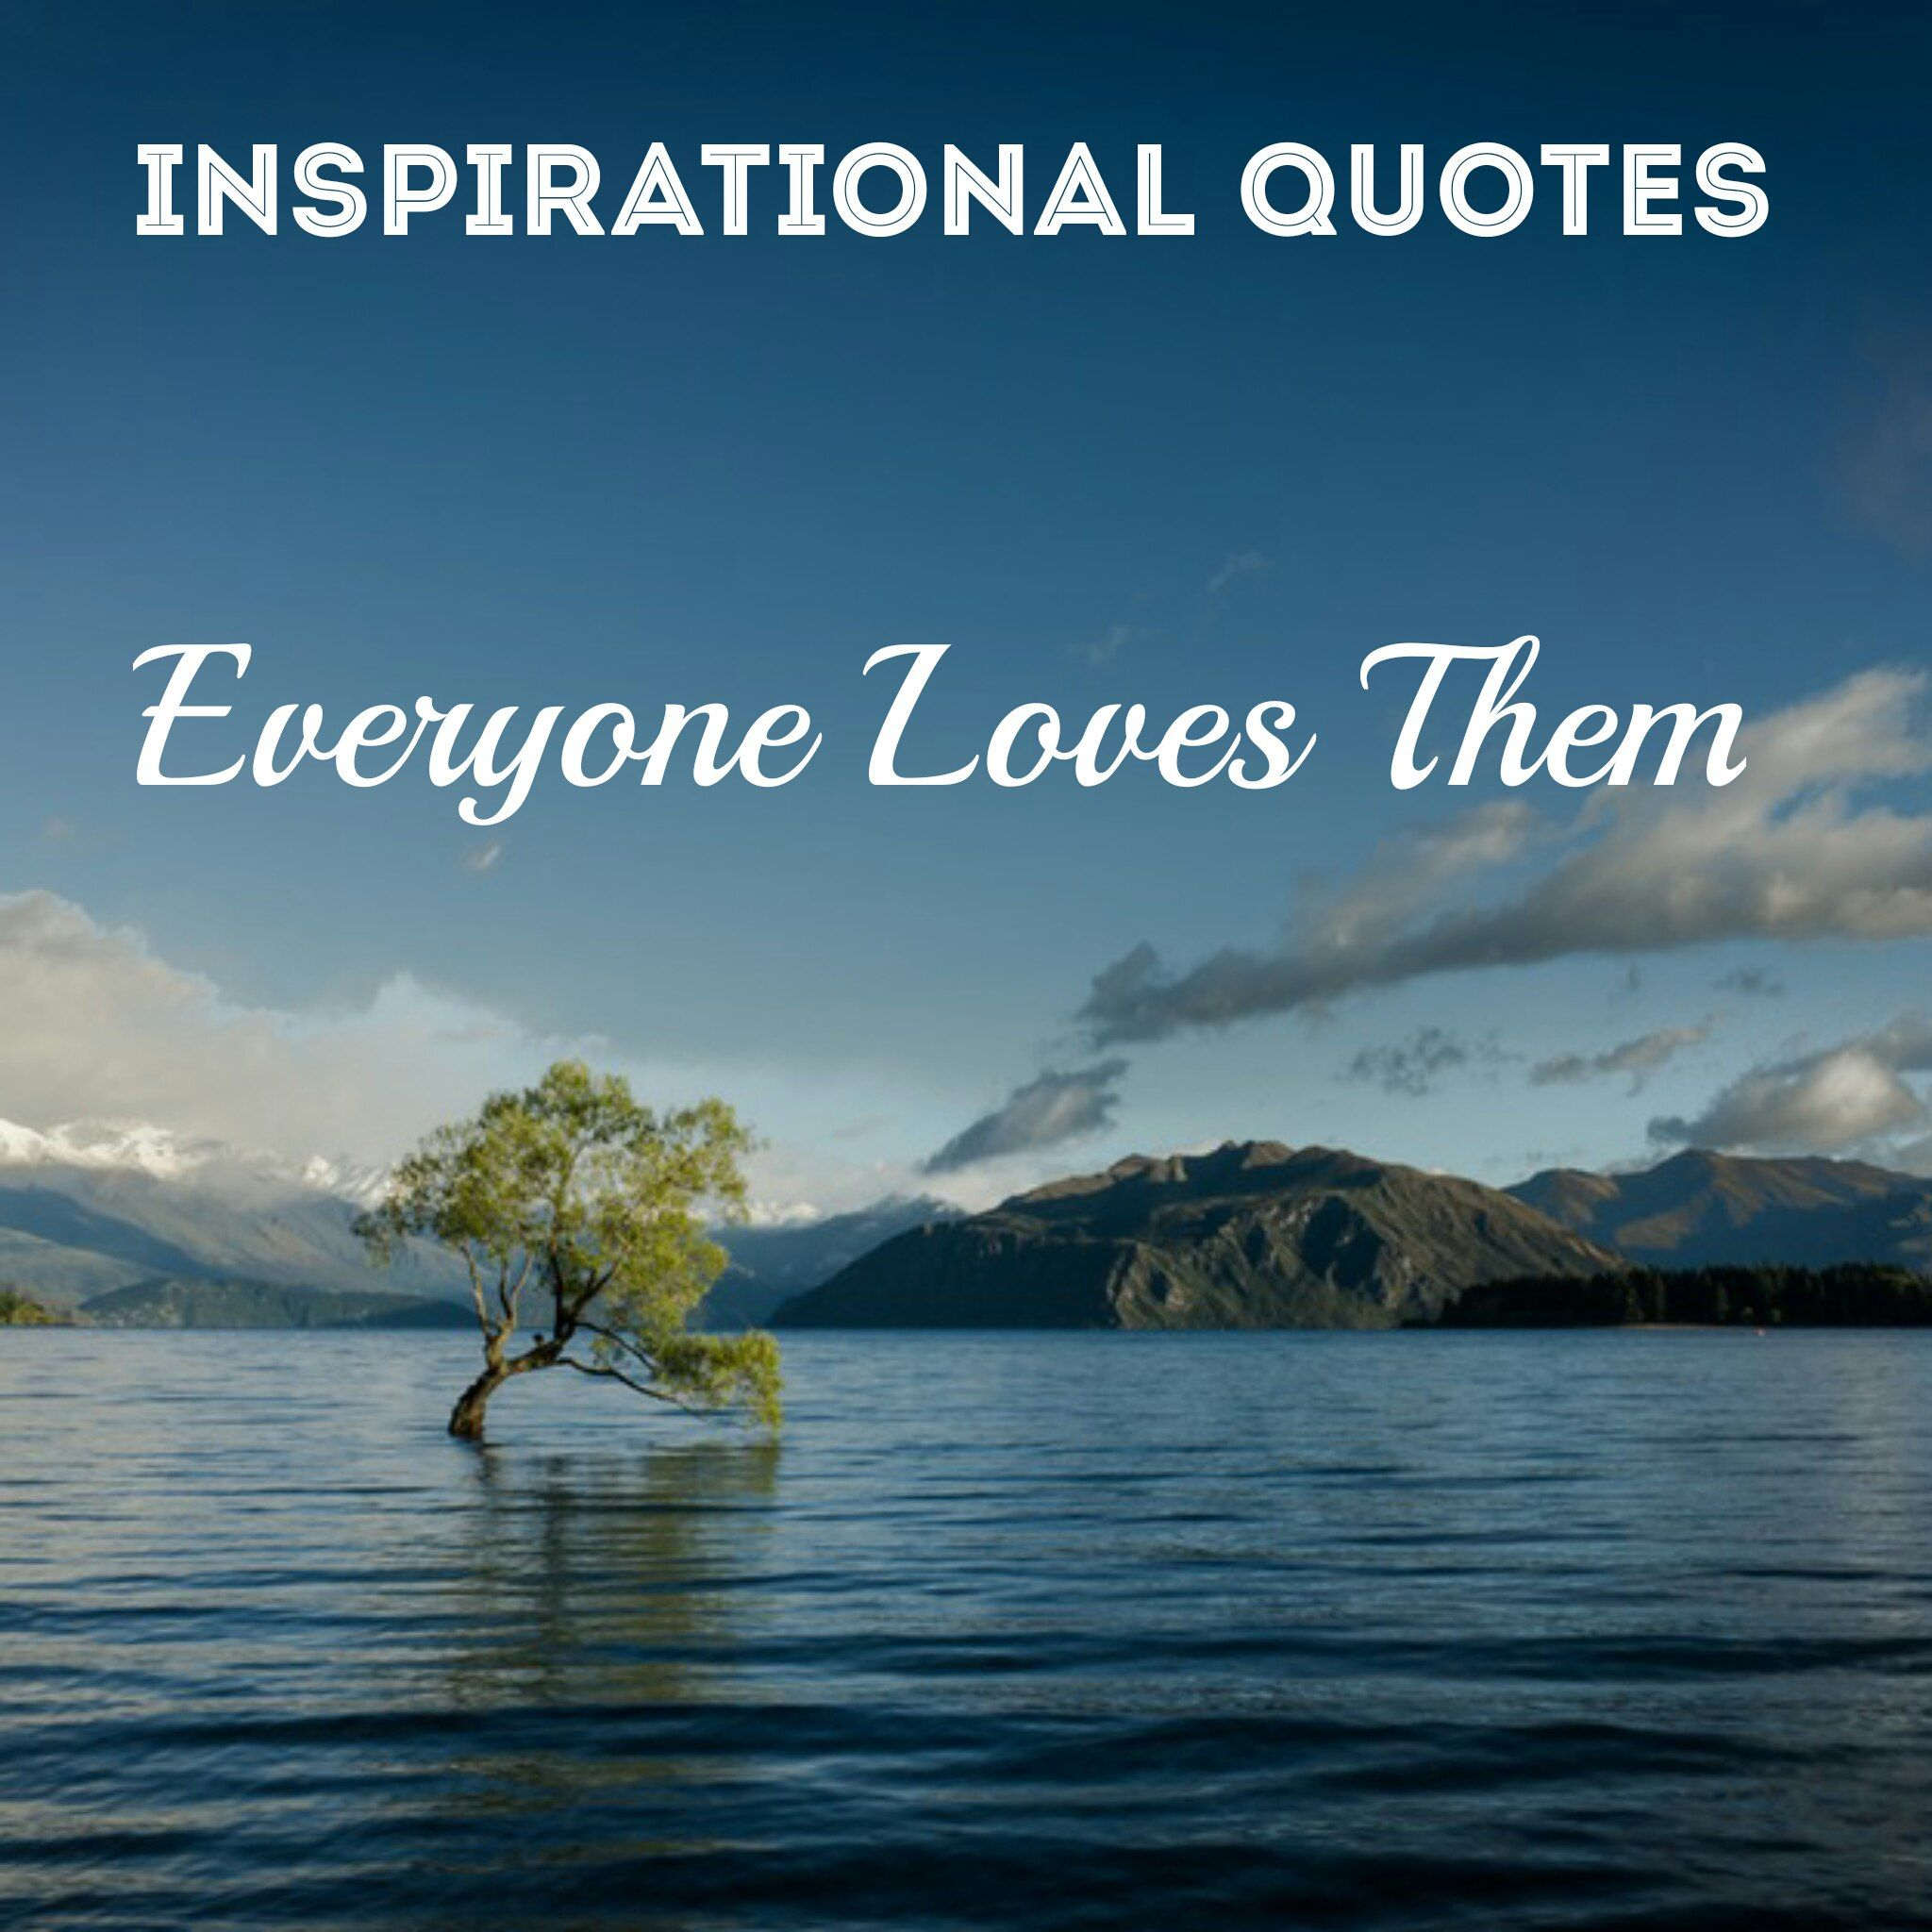 Motivational Quotes For Individuals: 154 Best Inspirational Quotes & Sayings Of All Time